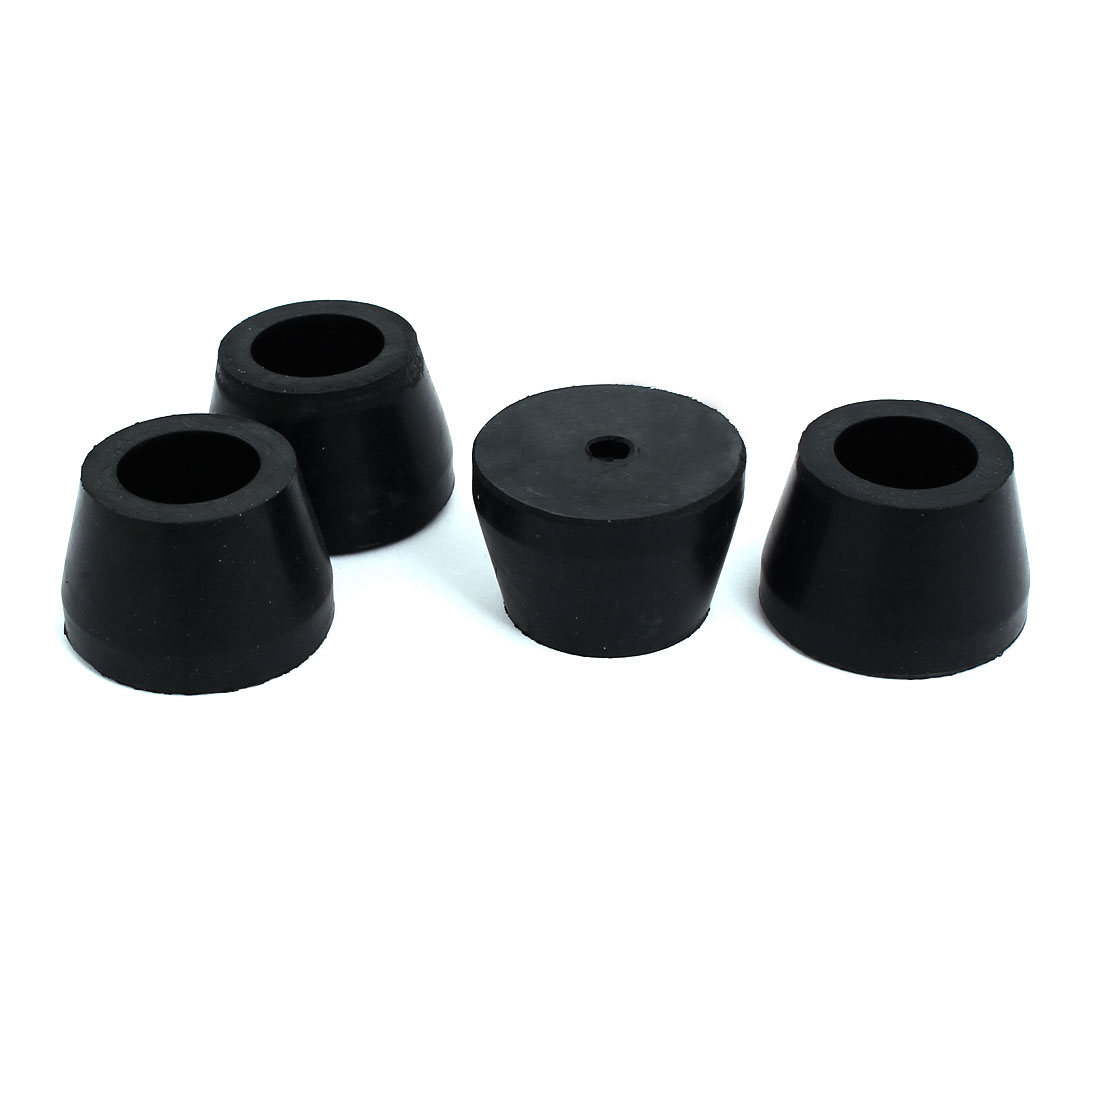 45mmx29mm Air Compressor Replacement Foot Pad Black 4pcs